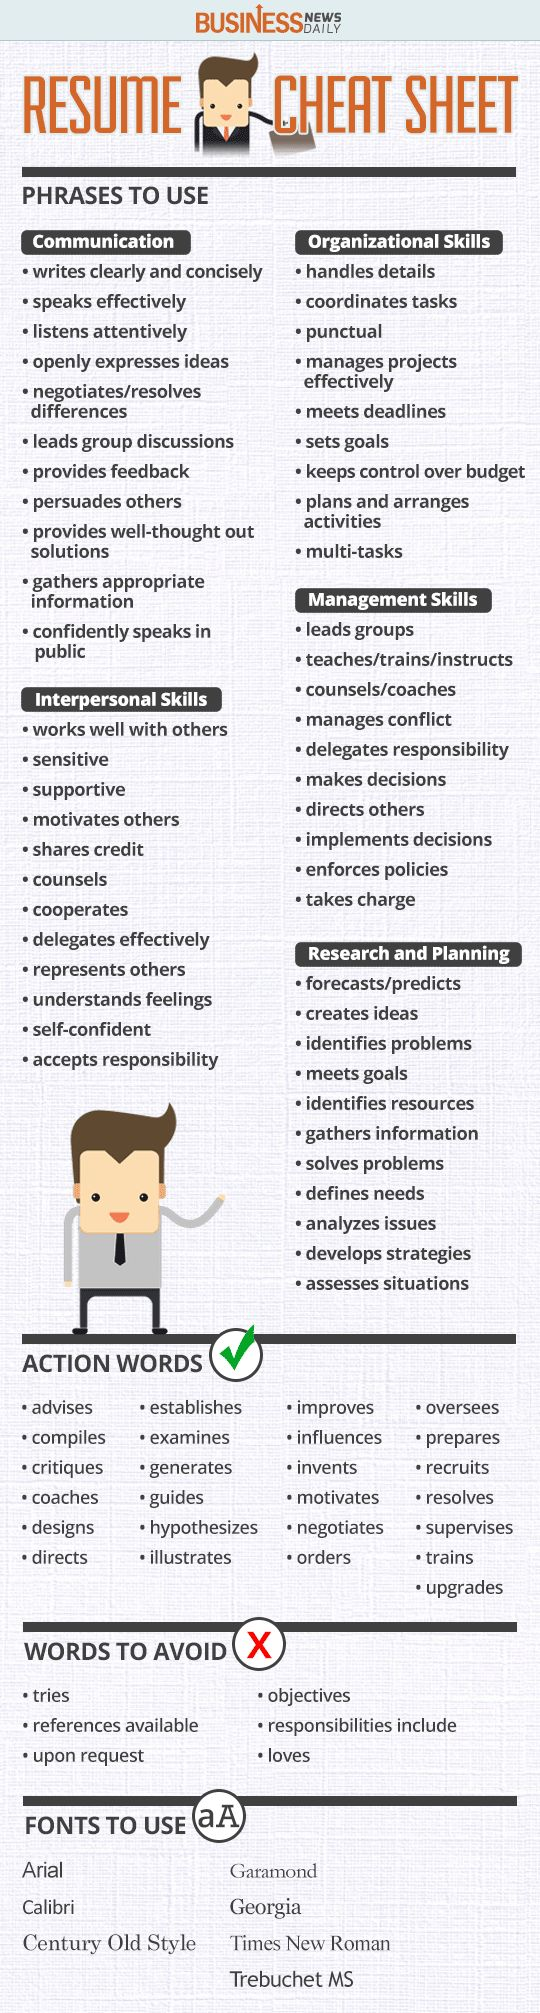 Opposenewapstandardsus  Surprising  Ideas About Resume On Pinterest  Cv Format Resume Cv And  With Gorgeous Resume Cheat Sheet Infographic Andrews Almost Done With A Complete Unit On Employment Which With Charming Project Management Resume Sample Also Magna Cum Laude On Resume In Addition Insurance Resume And Lawyer Resume Sample As Well As Free Resumes Download Additionally Customer Service Supervisor Resume From Pinterestcom With Opposenewapstandardsus  Gorgeous  Ideas About Resume On Pinterest  Cv Format Resume Cv And  With Charming Resume Cheat Sheet Infographic Andrews Almost Done With A Complete Unit On Employment Which And Surprising Project Management Resume Sample Also Magna Cum Laude On Resume In Addition Insurance Resume From Pinterestcom